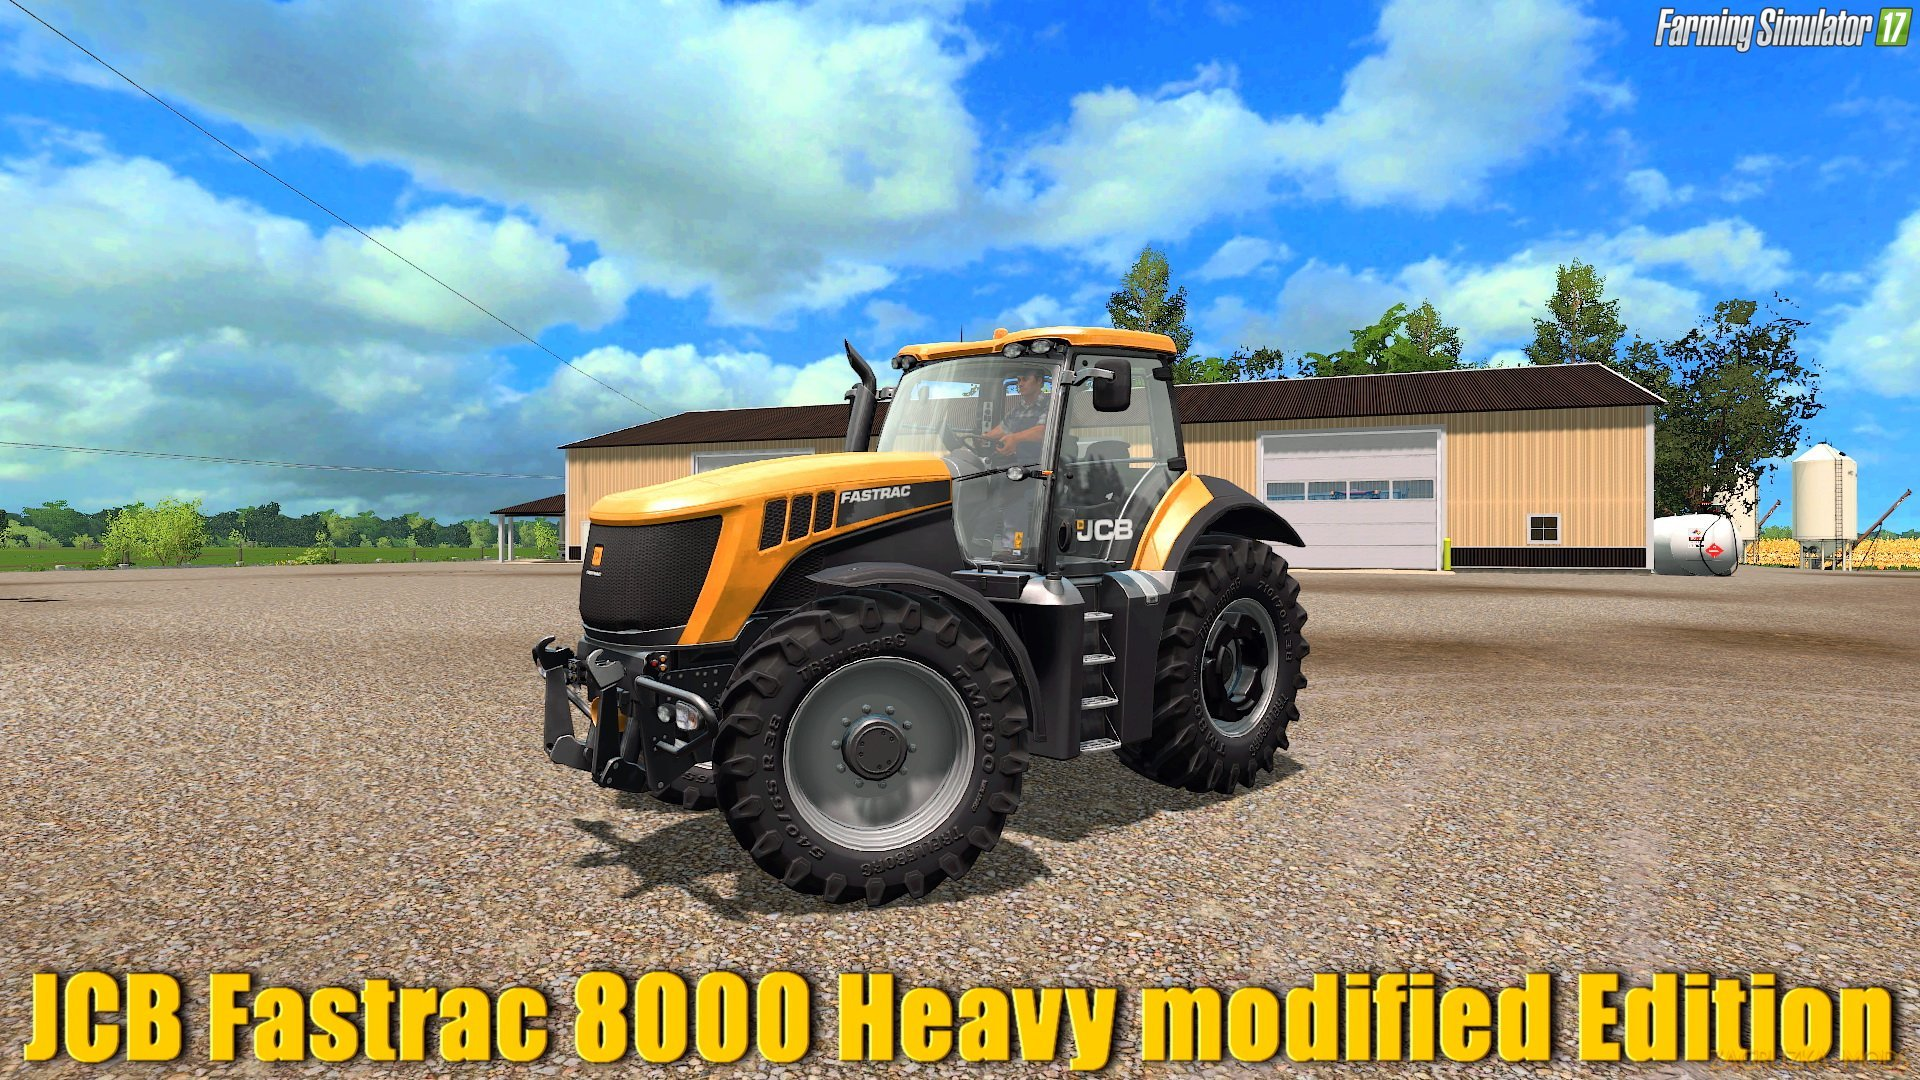 JCB Fastrac 8000 Heavy modified Edition v1.0 for FS 17